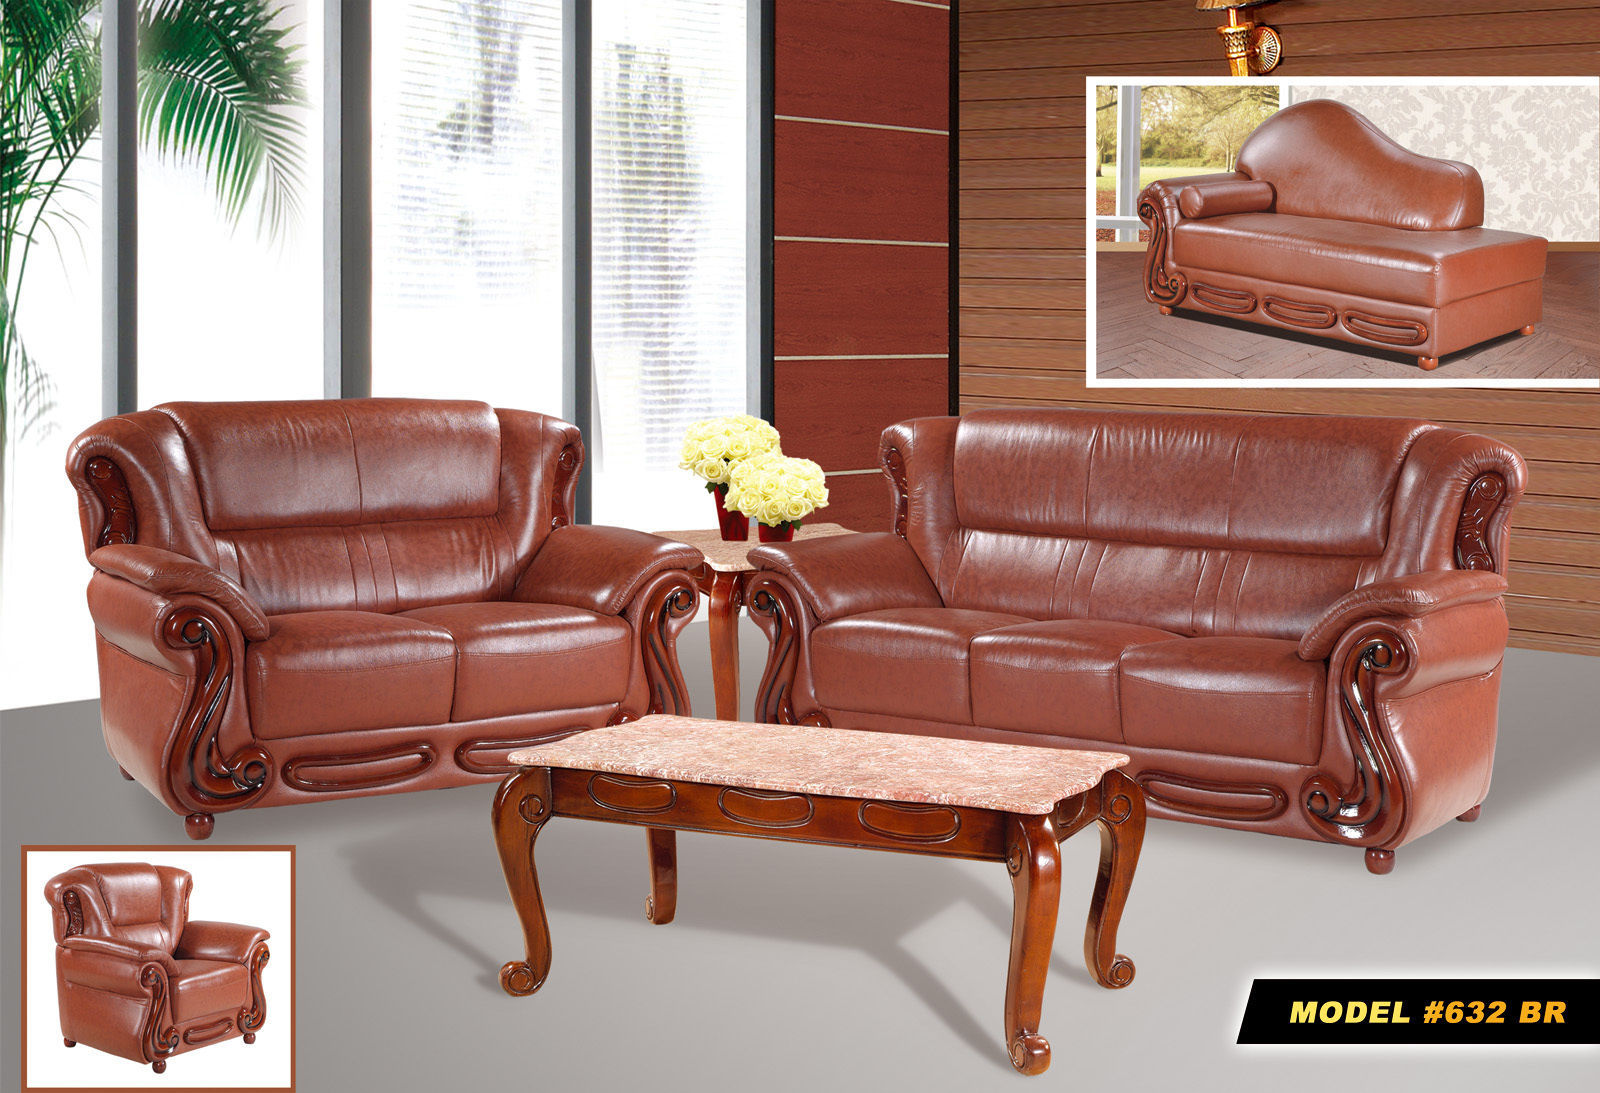 Meridian 632 Bella Living Room Set 3pcs in Brown Bonded Leather Traditional